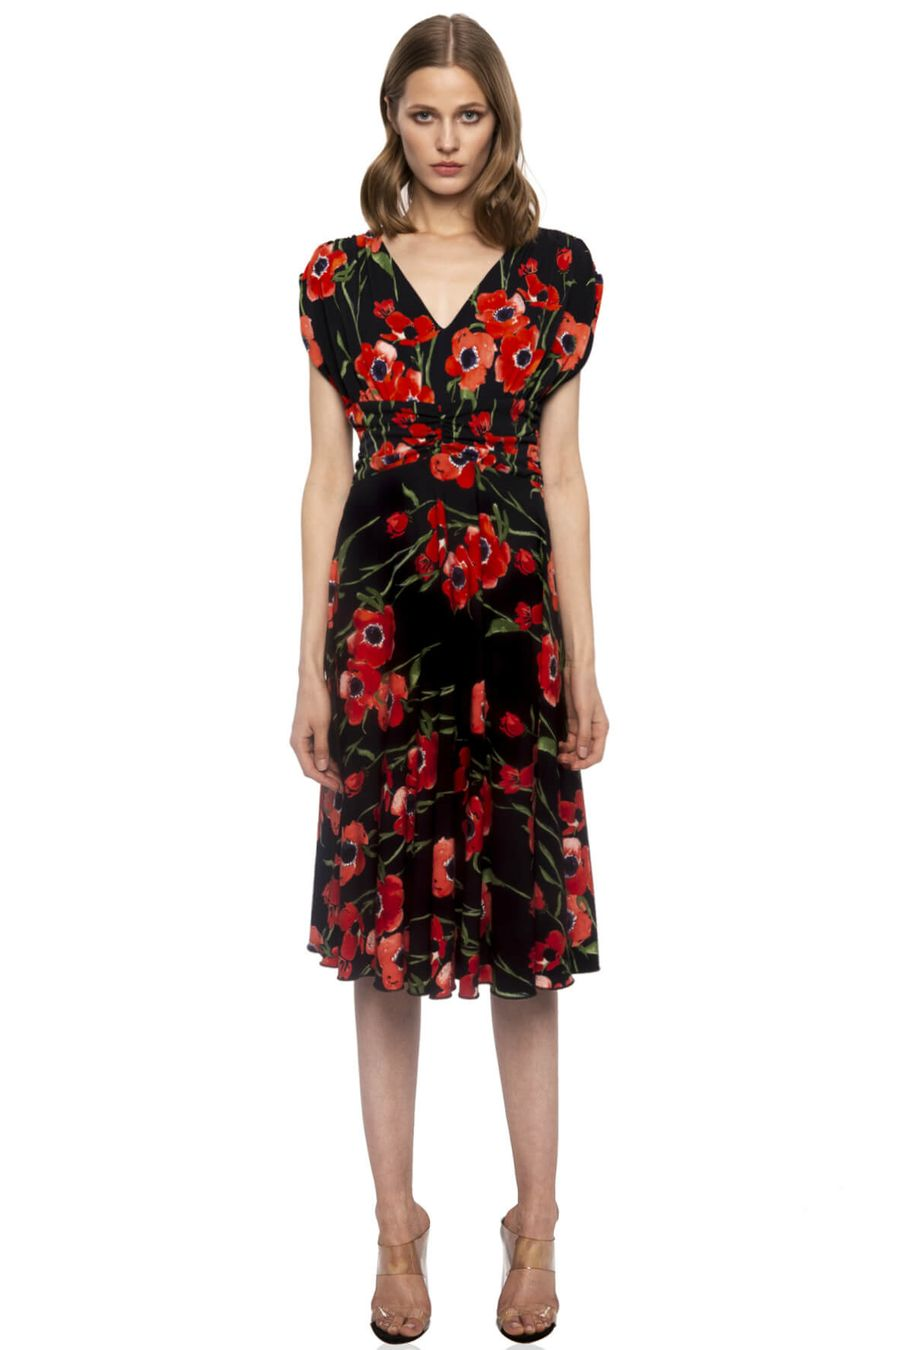 nissa-day-dress-with-floral-print-3